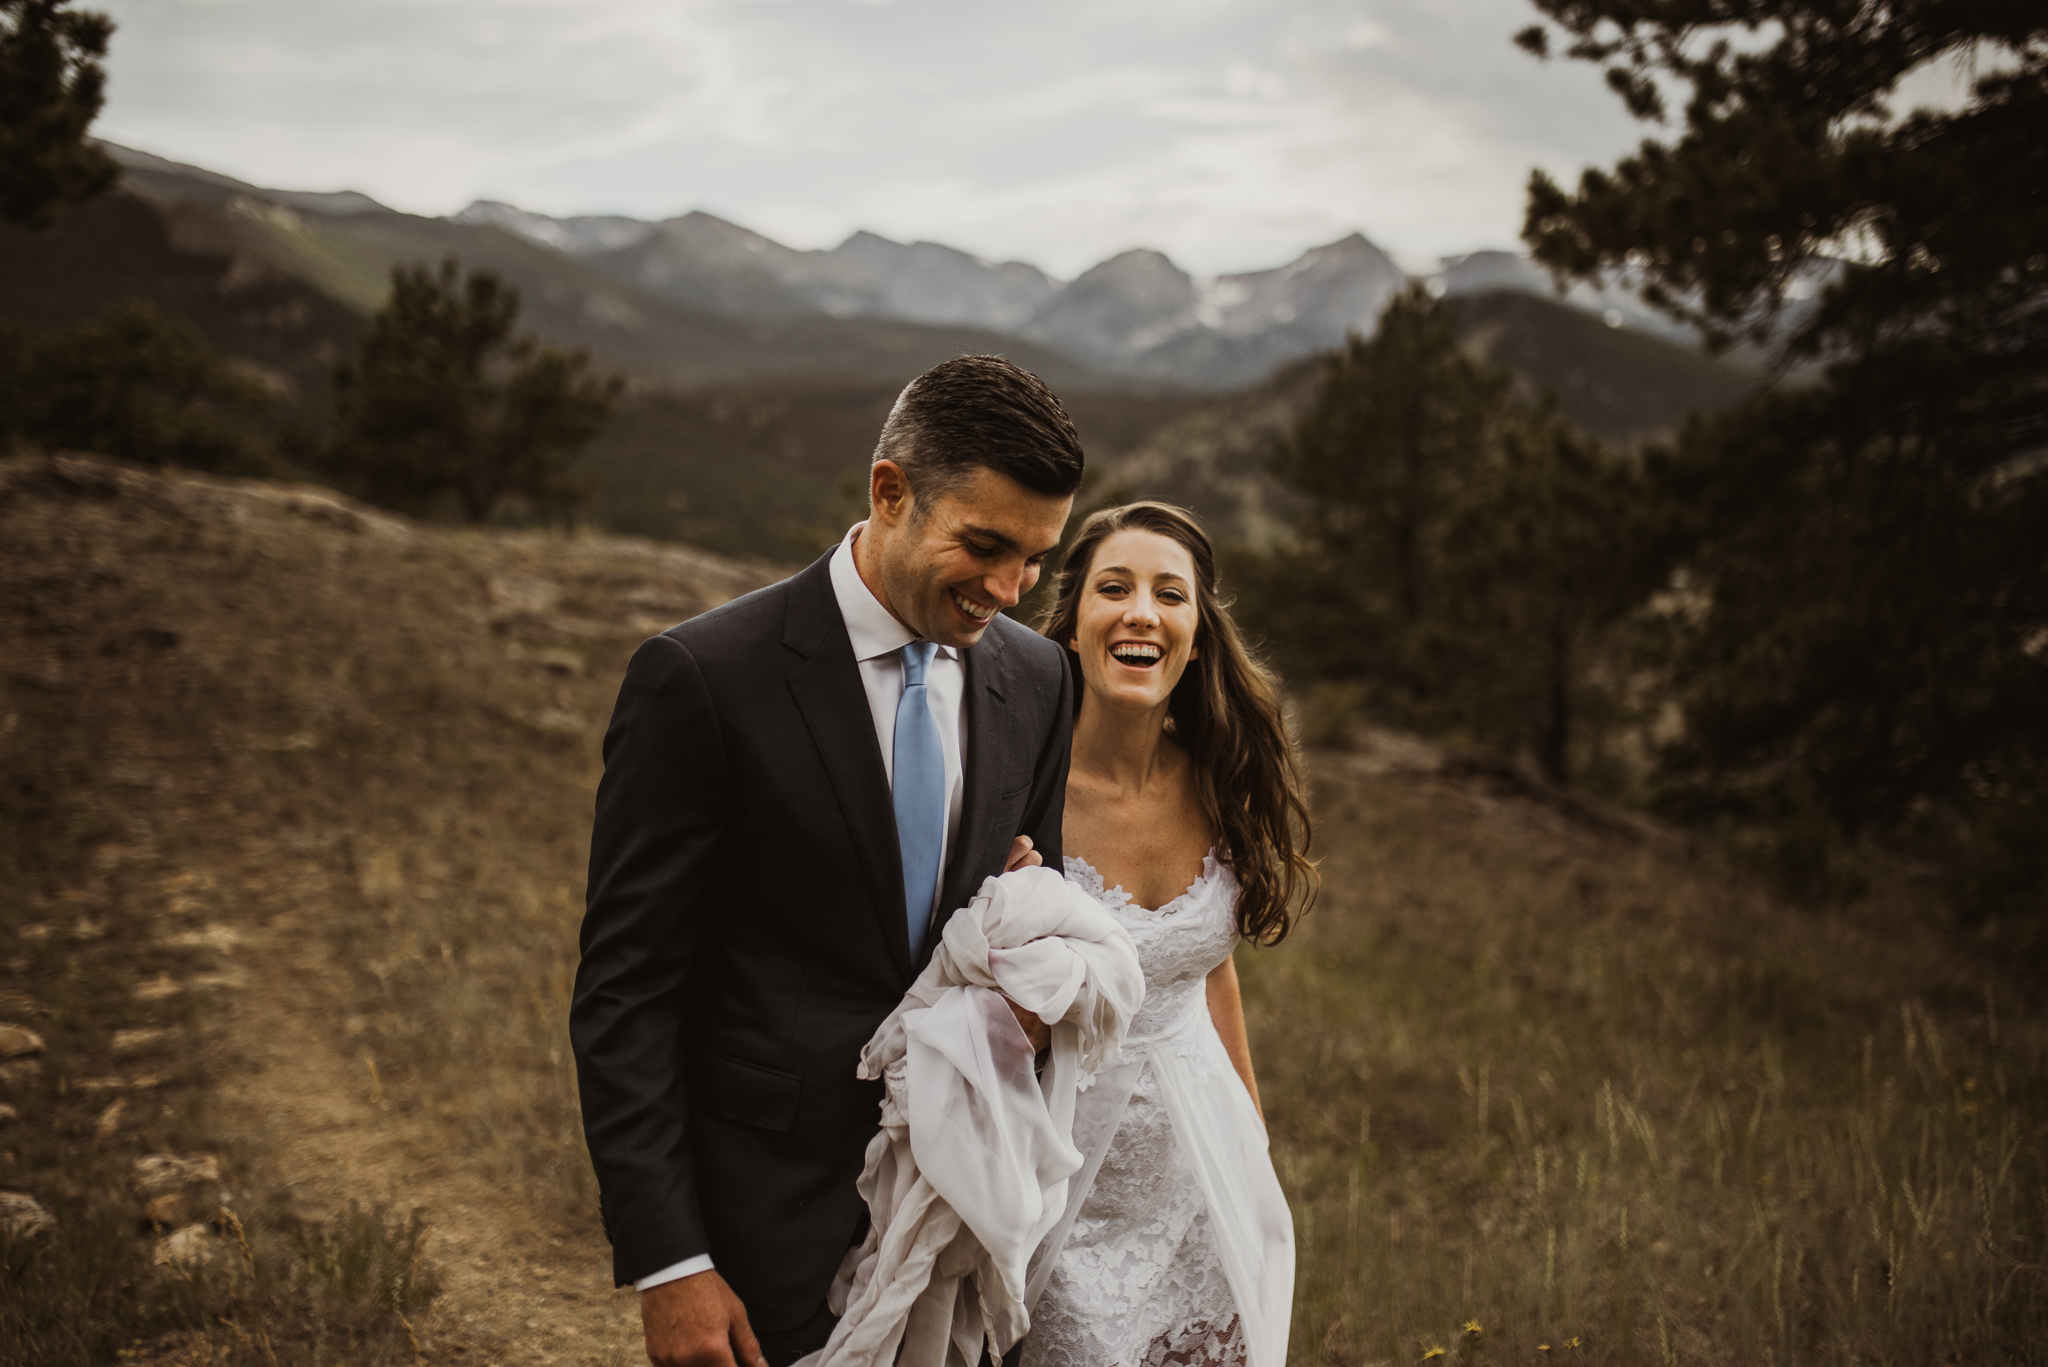 ©Isaiah + Taylor Photography - Estes National Park Adventure Elopement, Colorado Rockies-146.jpg